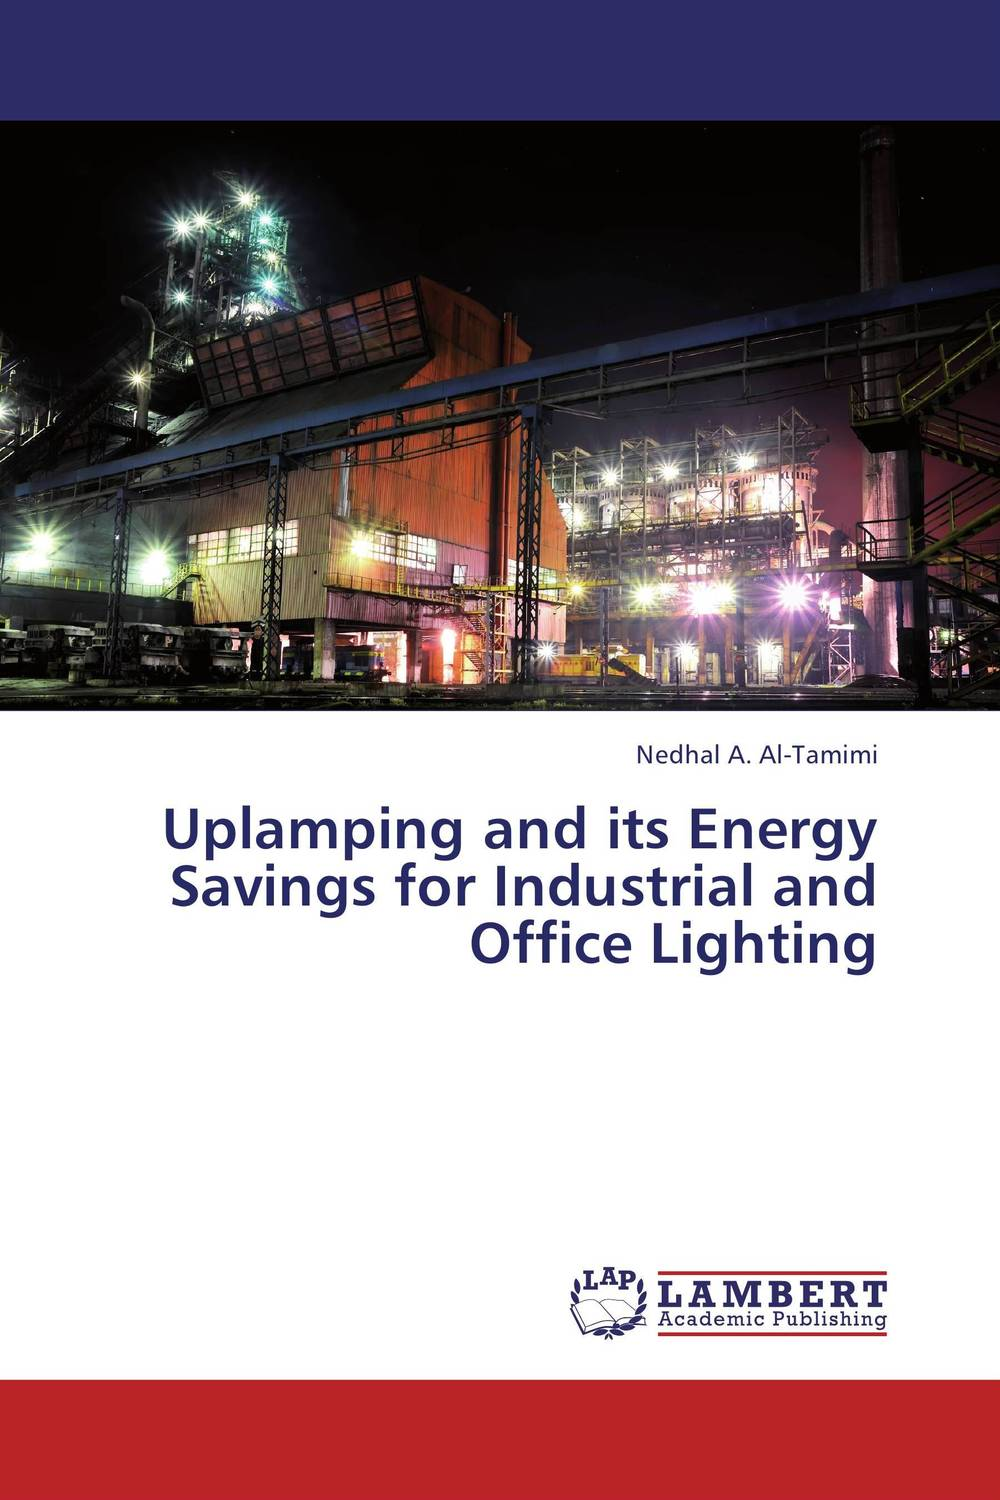 Uplamping and its Energy Savings for Industrial and Office Lighting development of ghg mitigation options for alberta's energy sector